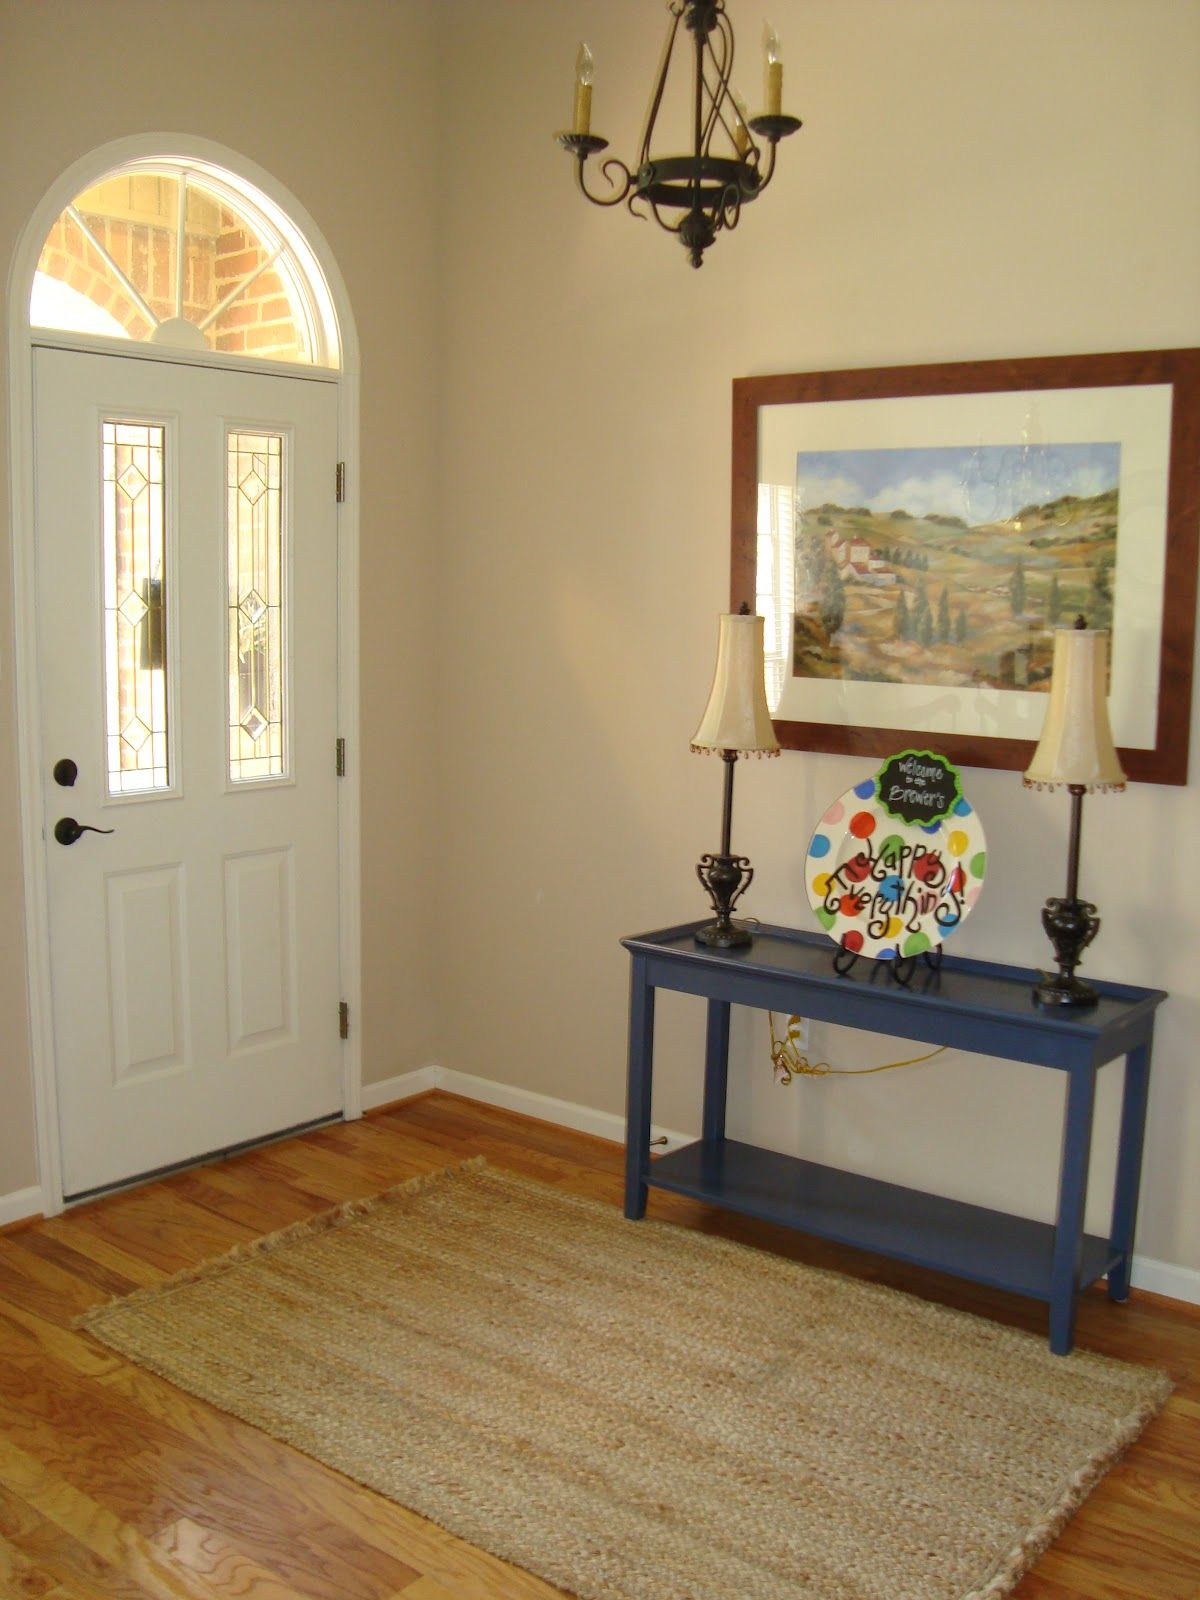 Pin On Stuff To Buy Entry rugs for hardwood floors